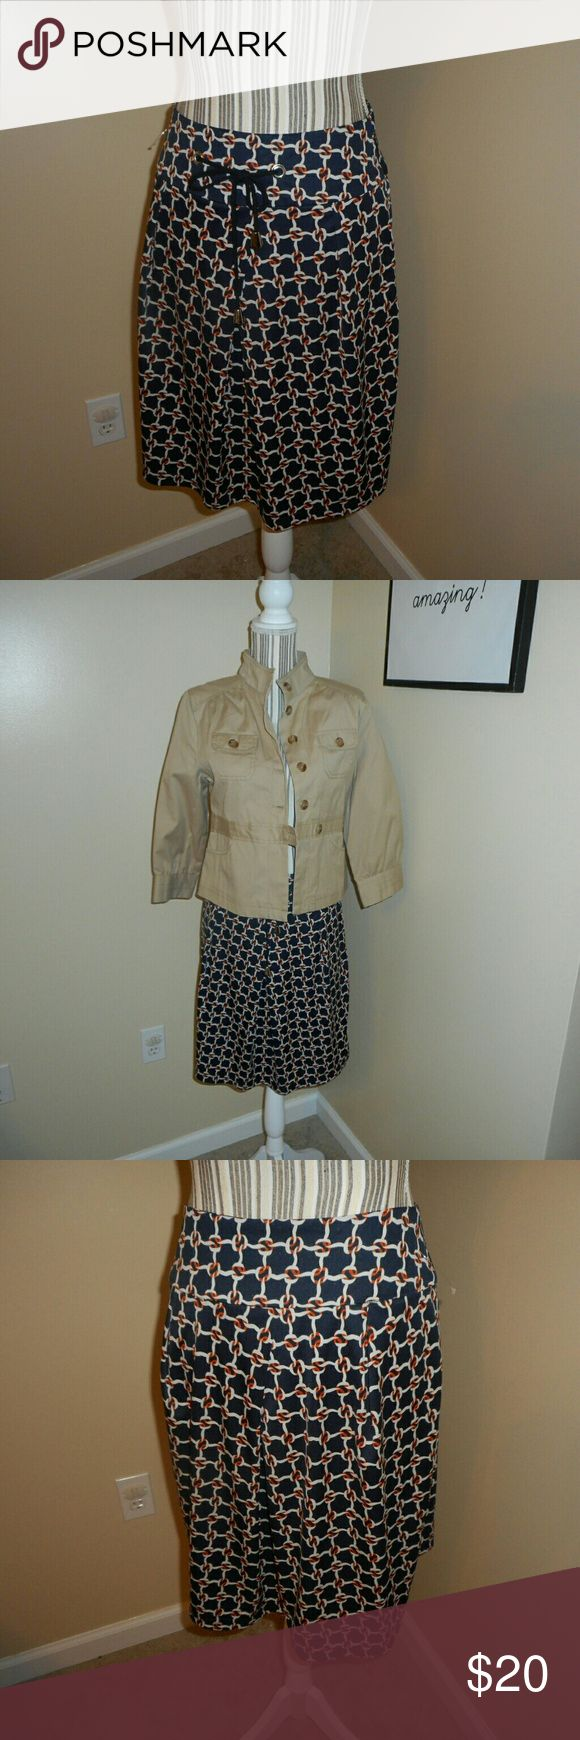 EUC! Natural Beauty Basic Nautical Skirt Sz. M EUC! Natural Beauty Basic Nautical Skirt Sz. M Only skirt is for sale in this listing. Coat is to show what it would look like as an outfit. Cute blue, white, and orange skirt with tie Zip up back natural beauty basic Skirts